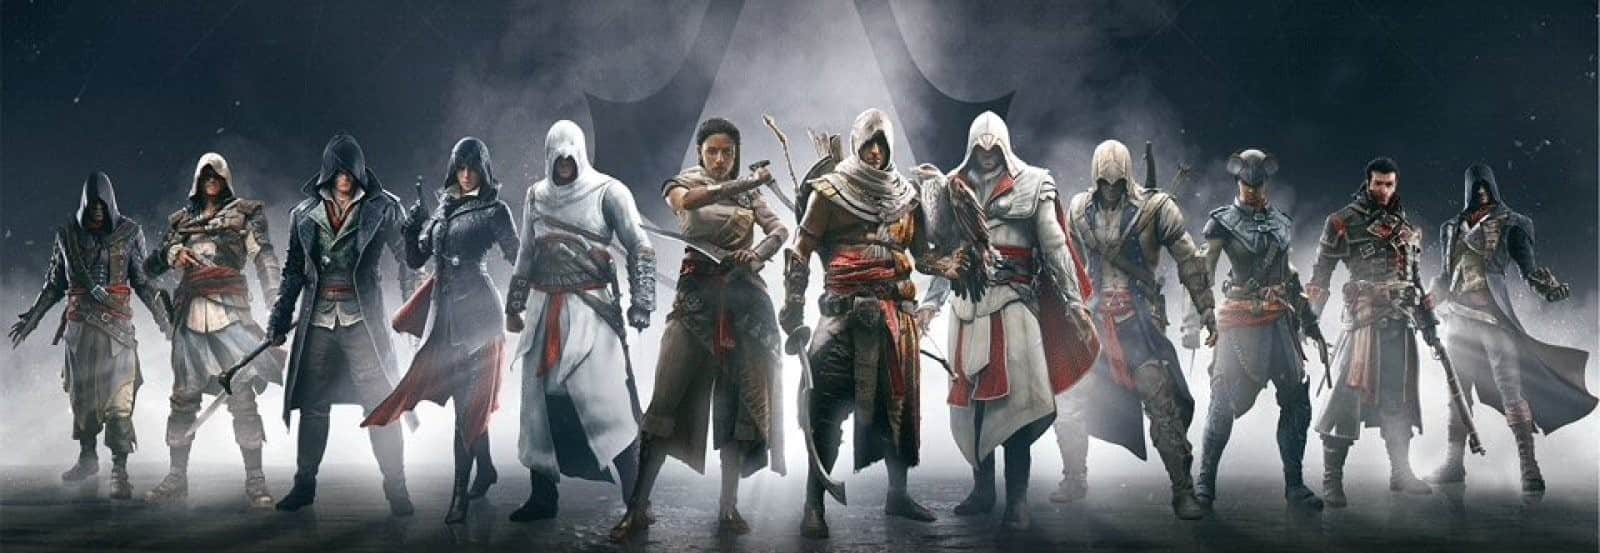 The Full Chronological Order of Assassin's Creed Games